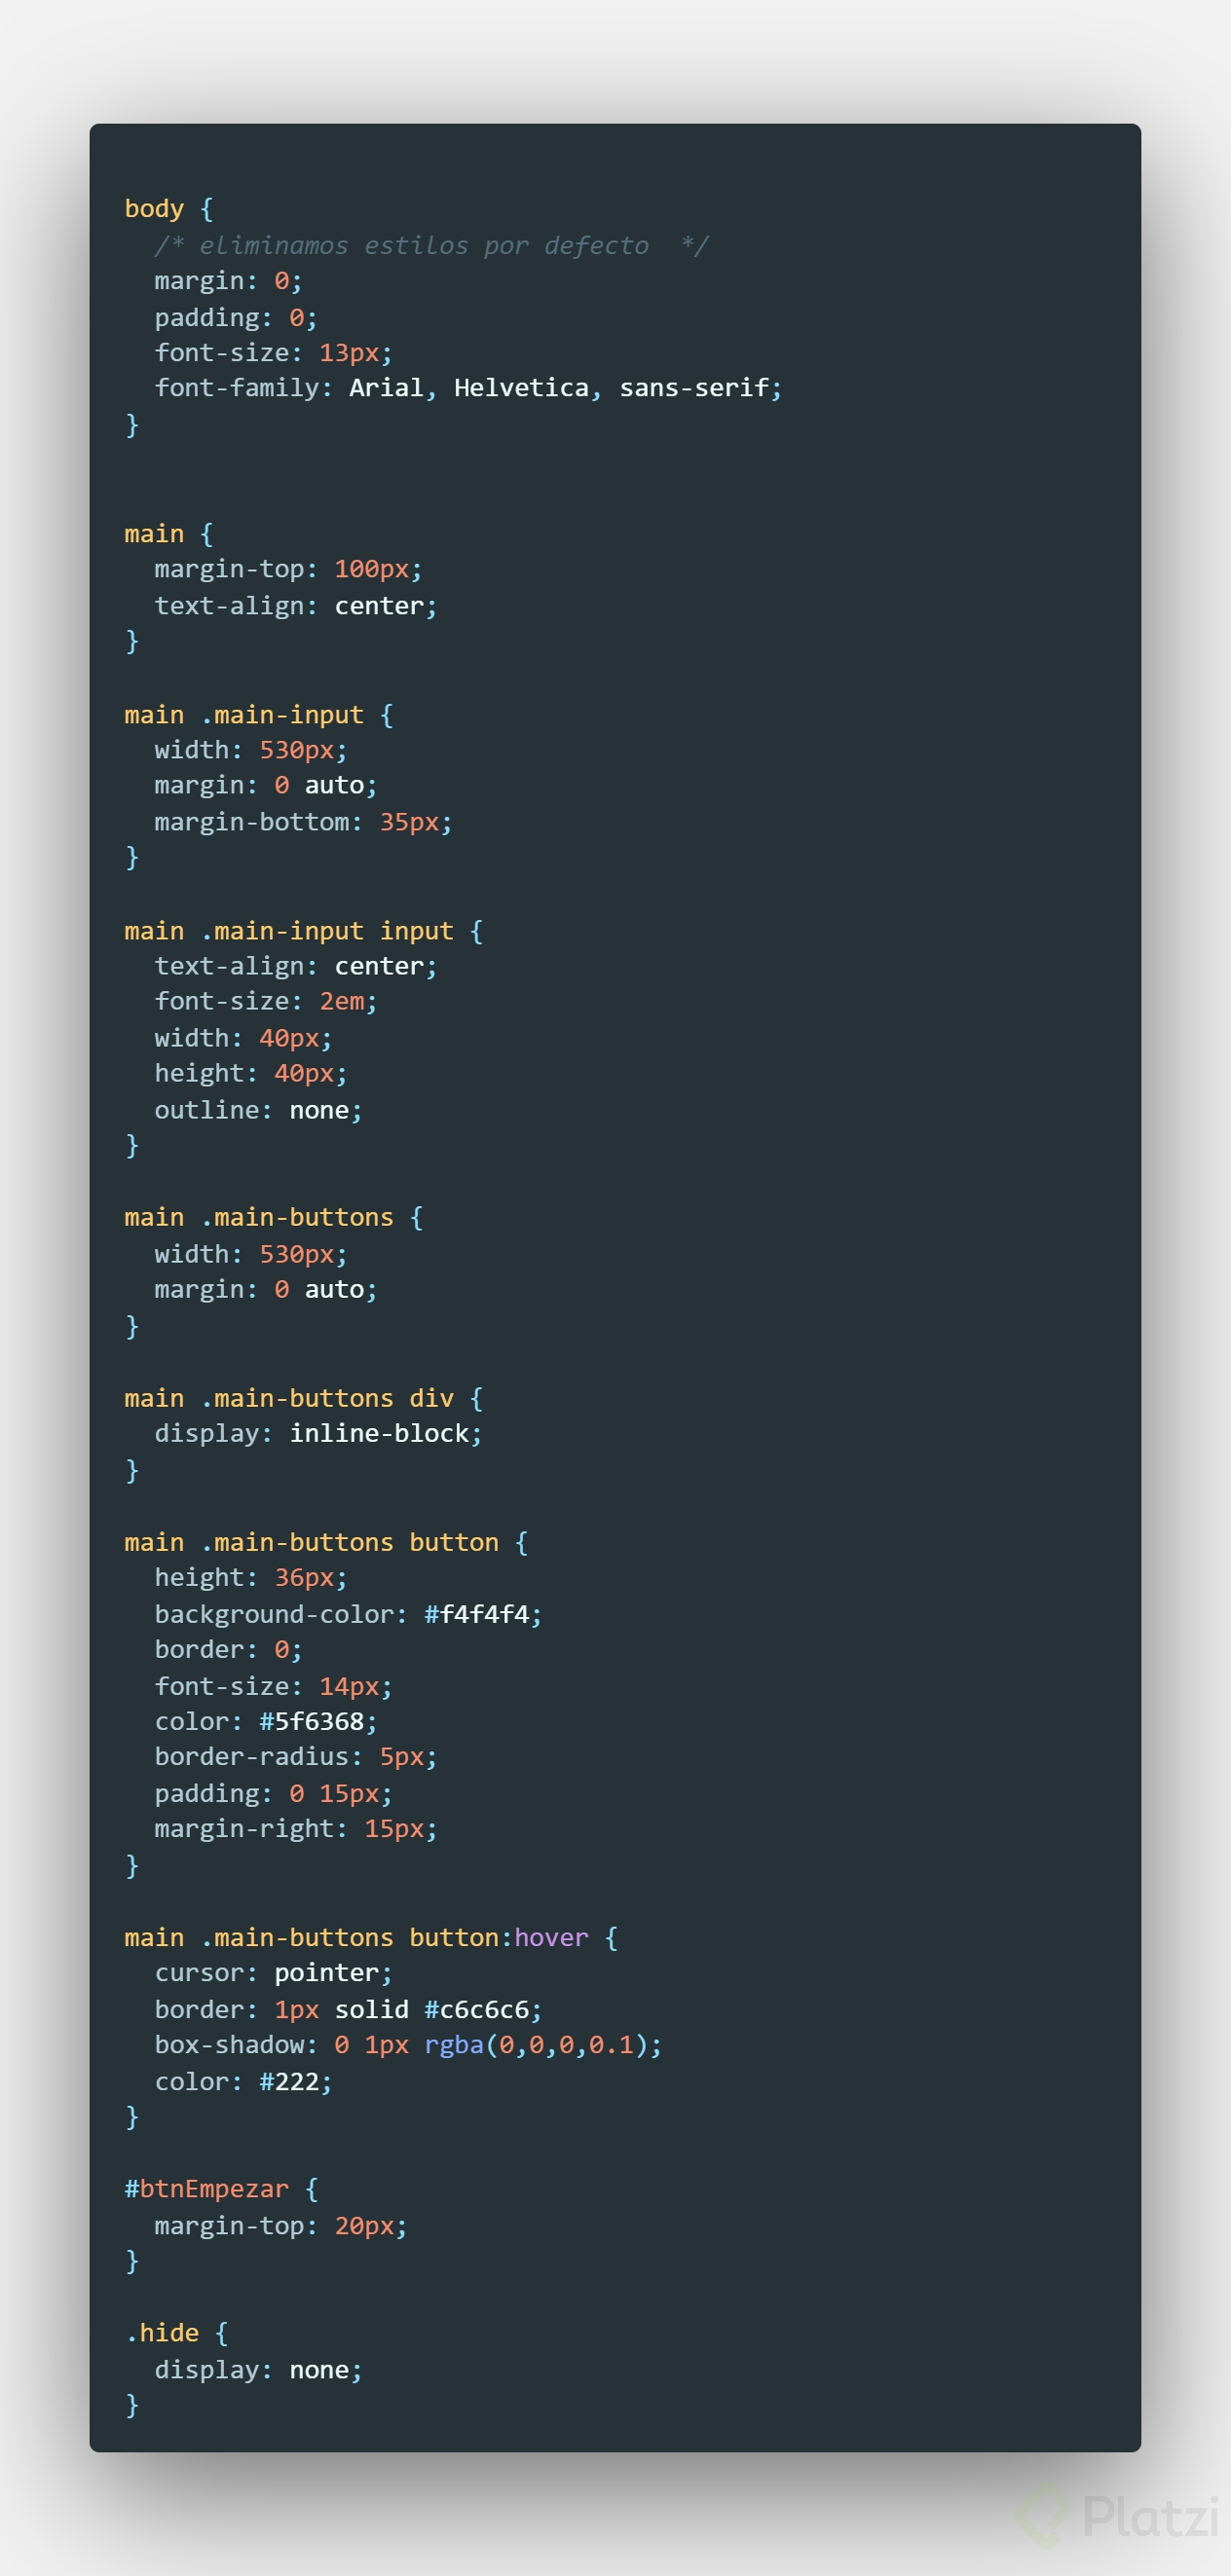 css_code.png